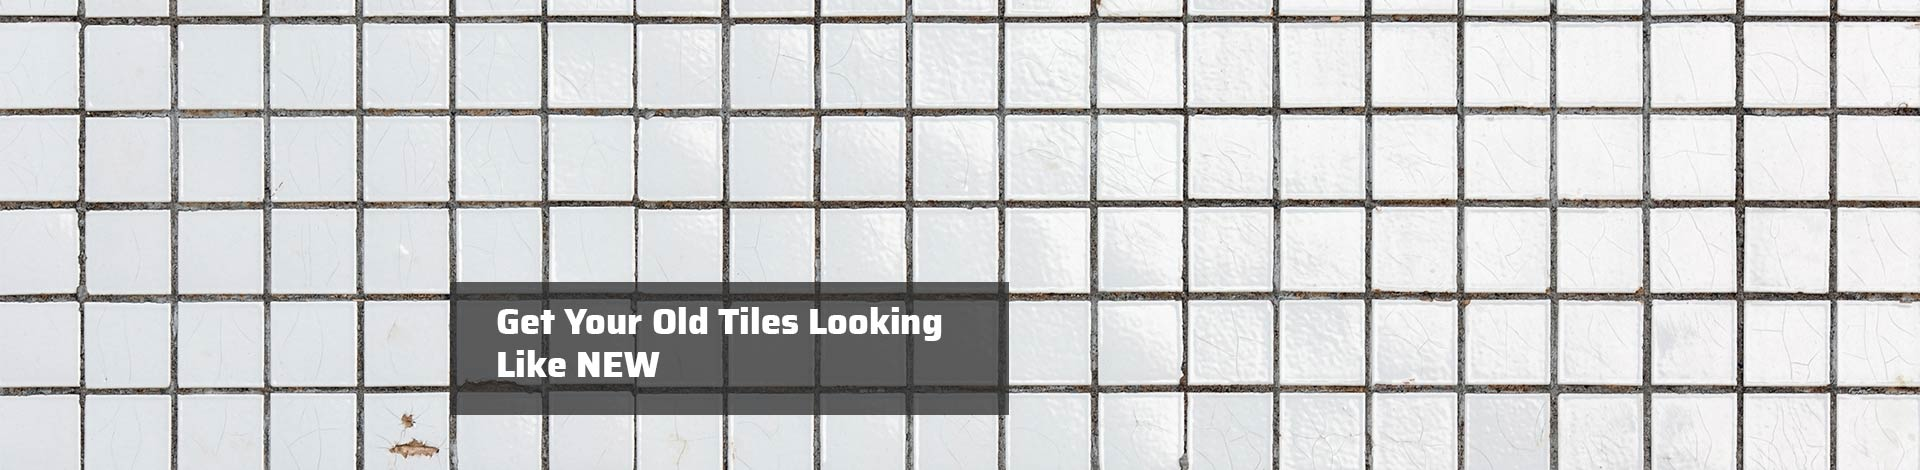 Get Your Tiles Looking like NEW